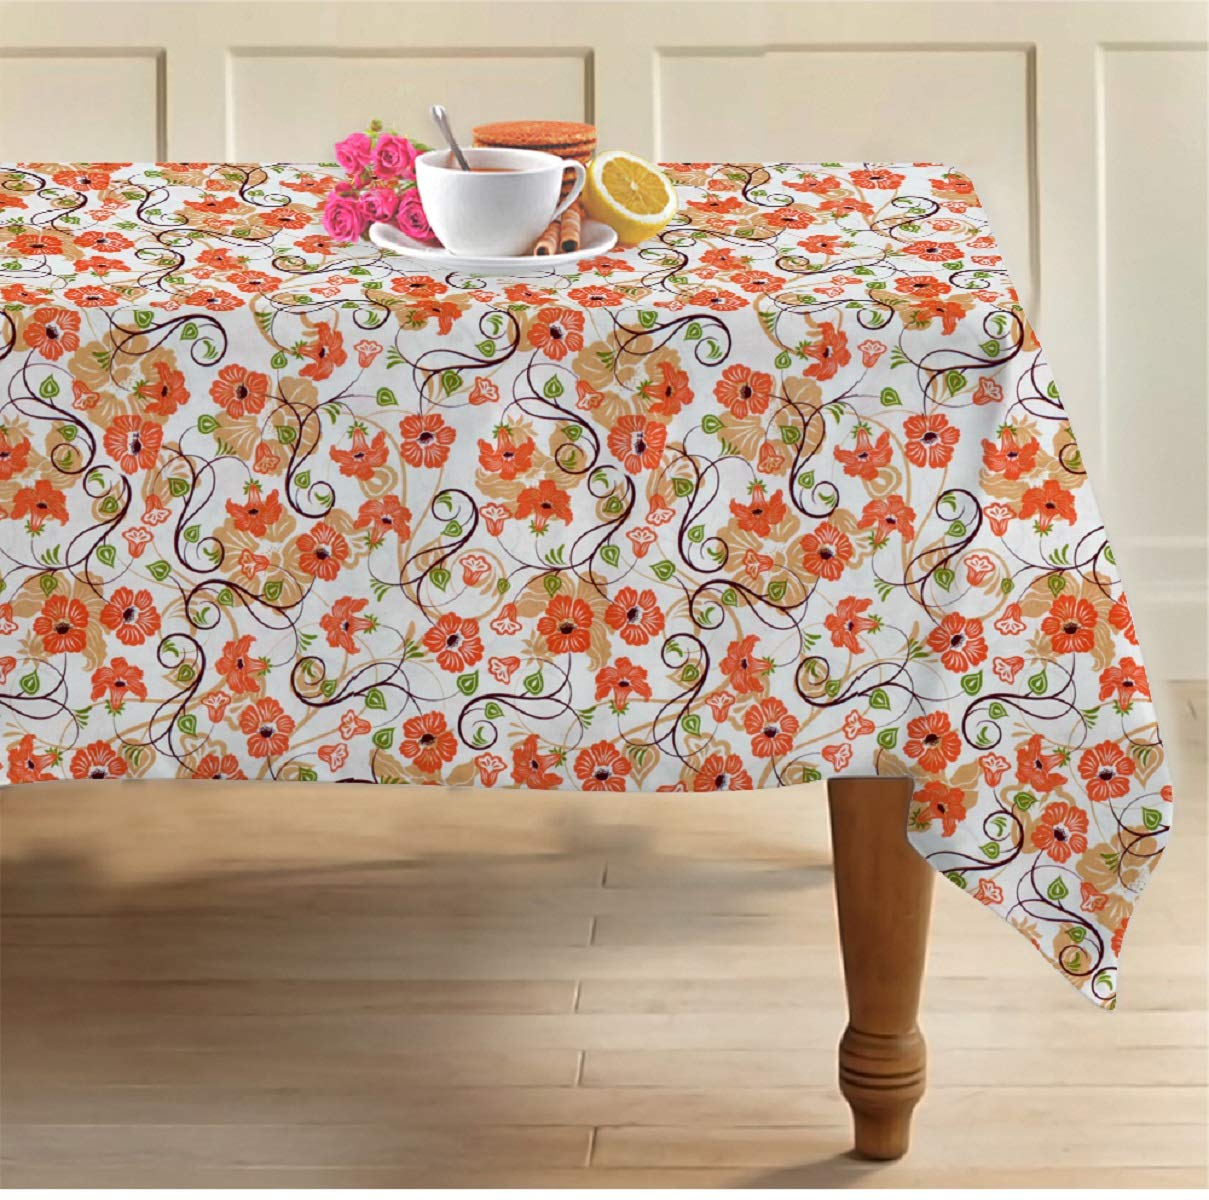 A colorful flower print table cloth with tea cup and eatables kept on it in the above picture.